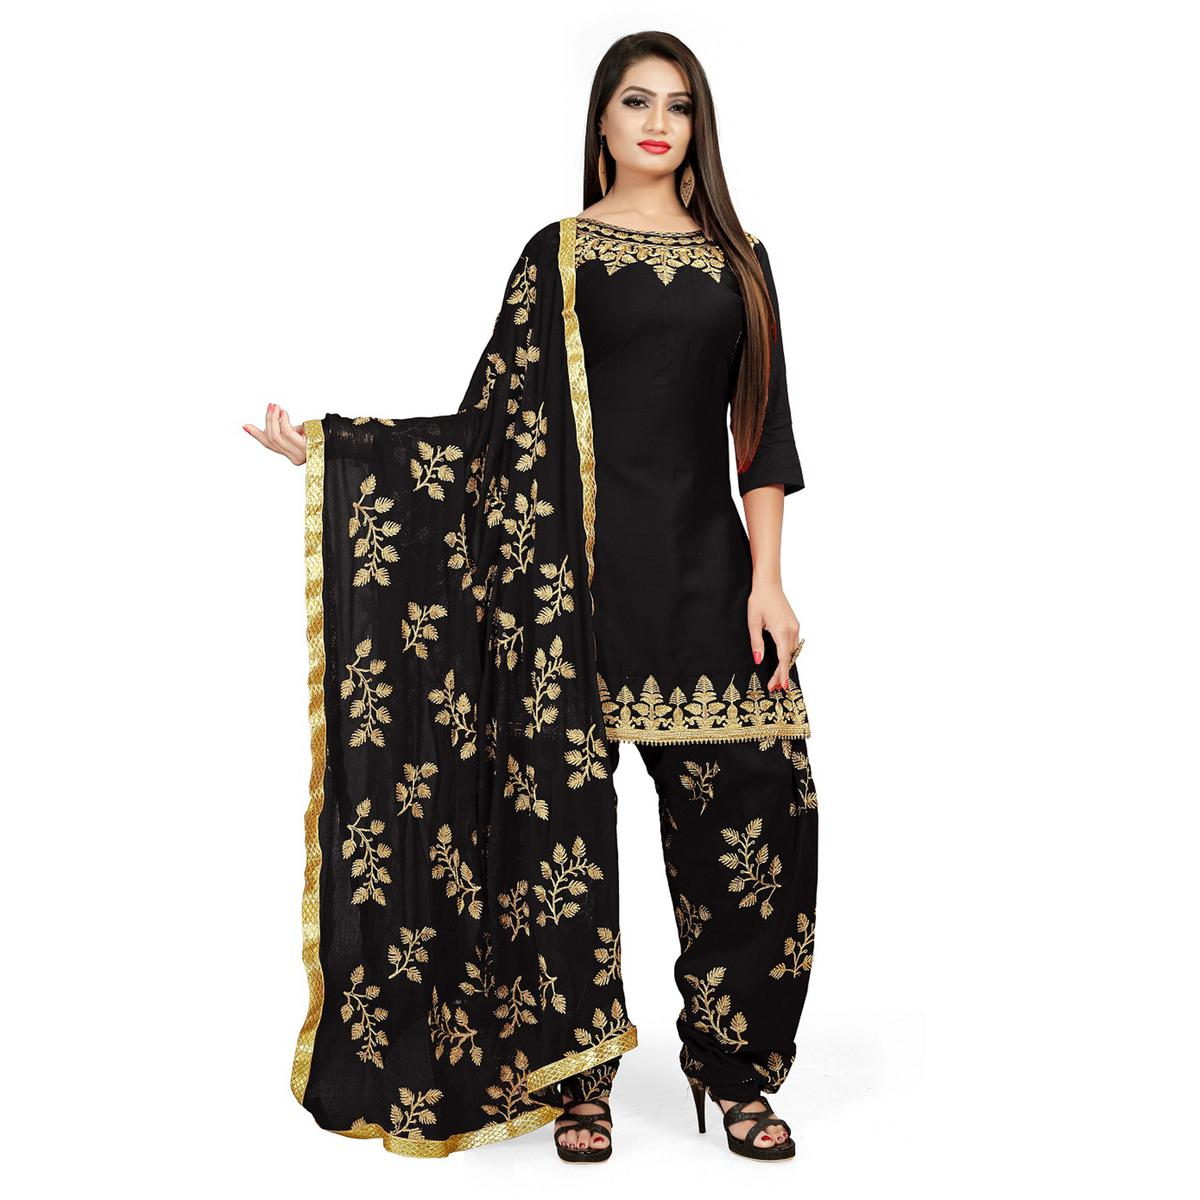 IRIS - Black Colored Party Wear Embroidered Cotton Patiyala Style Dress Material